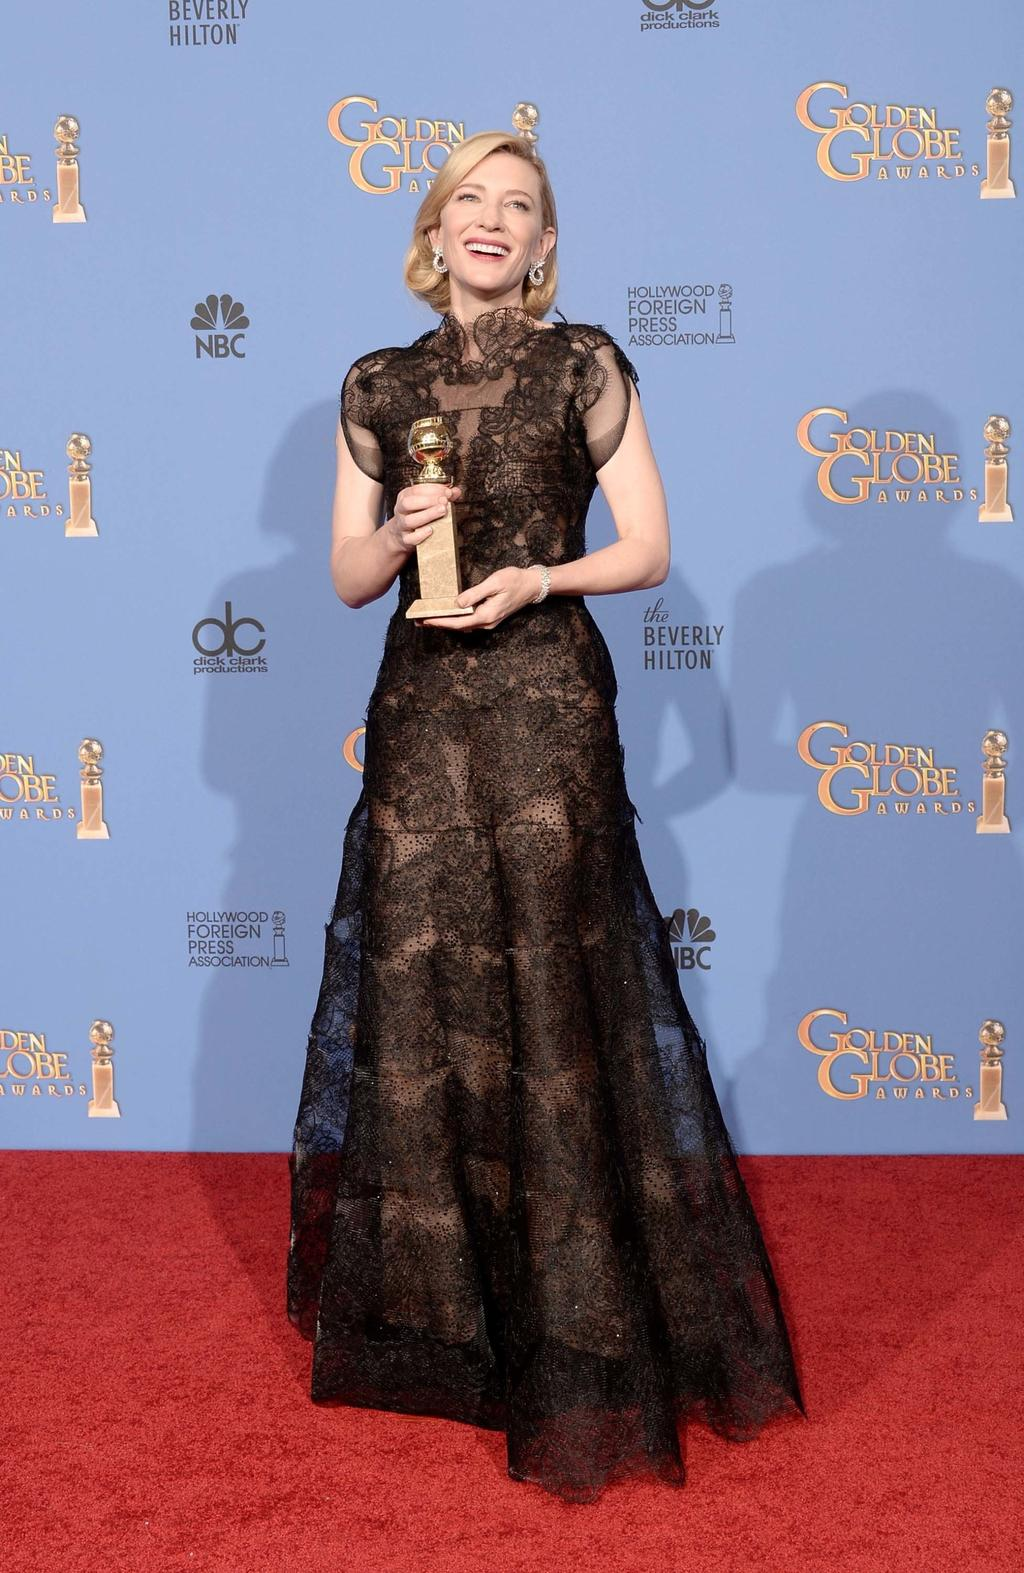 30_armani_couture_after_her_2014_golden_globes_best_actress.jpg